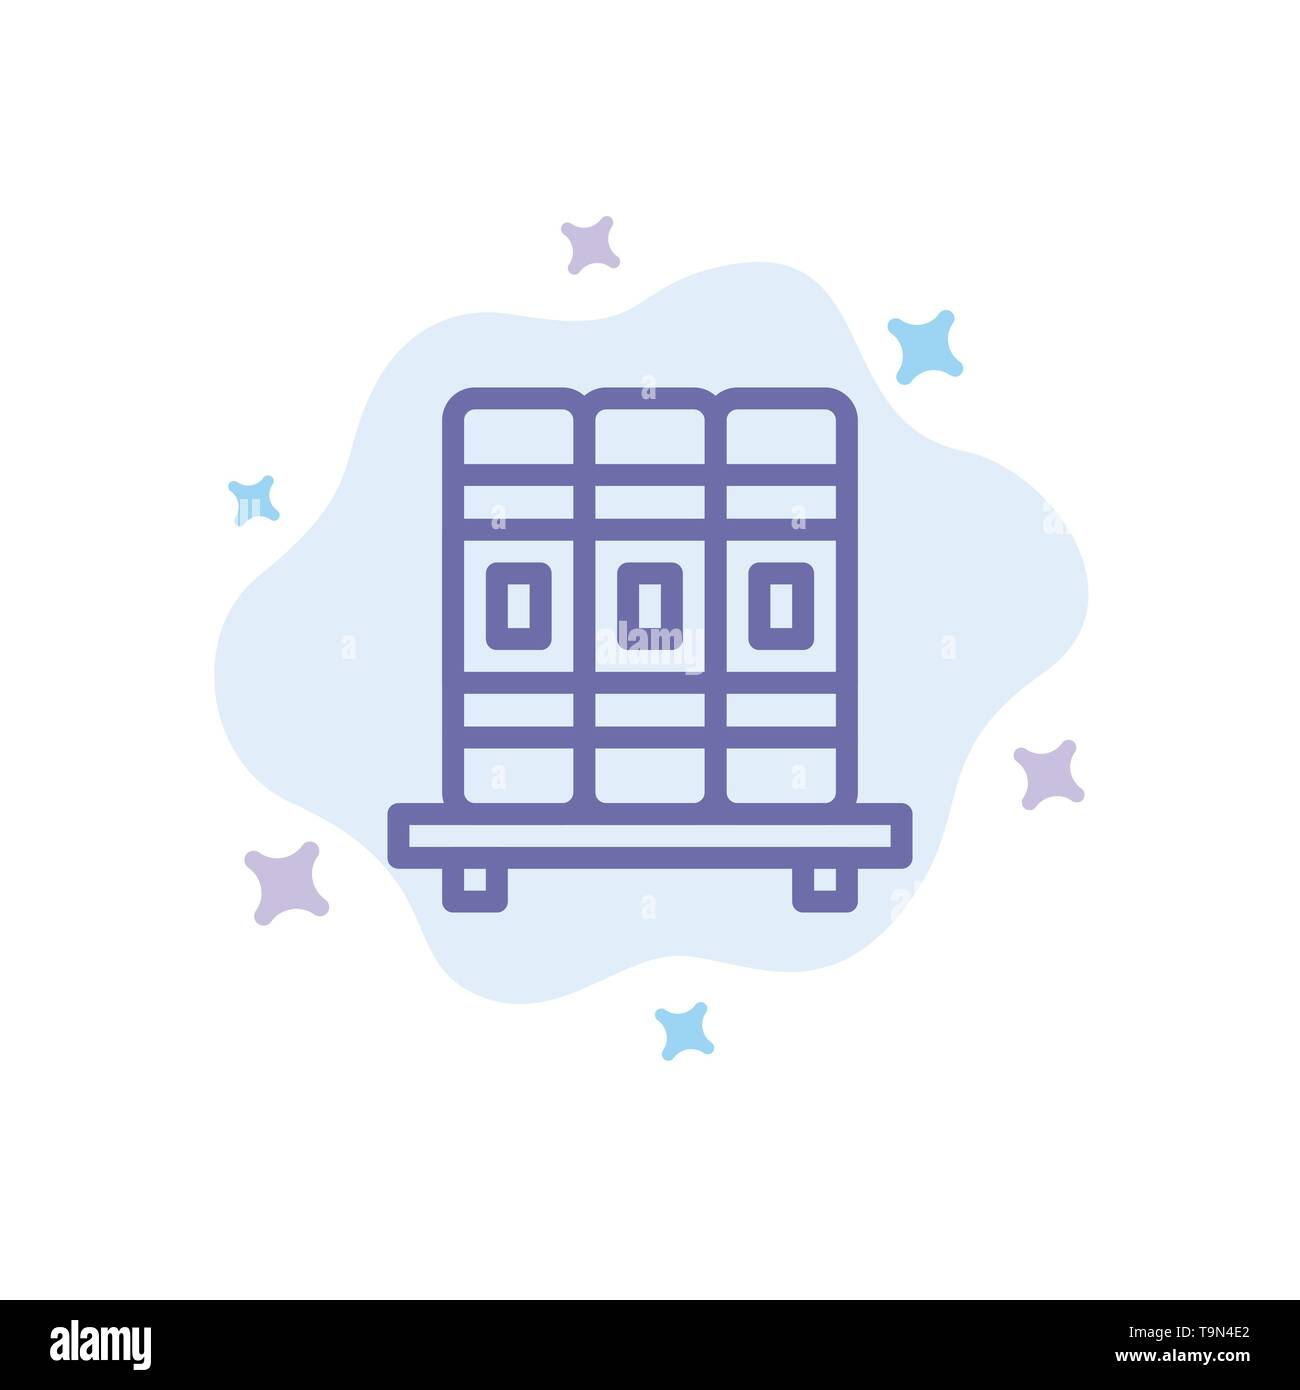 Cupboard, Education, Studies Blue Icon on Abstract Cloud Background - Stock Image